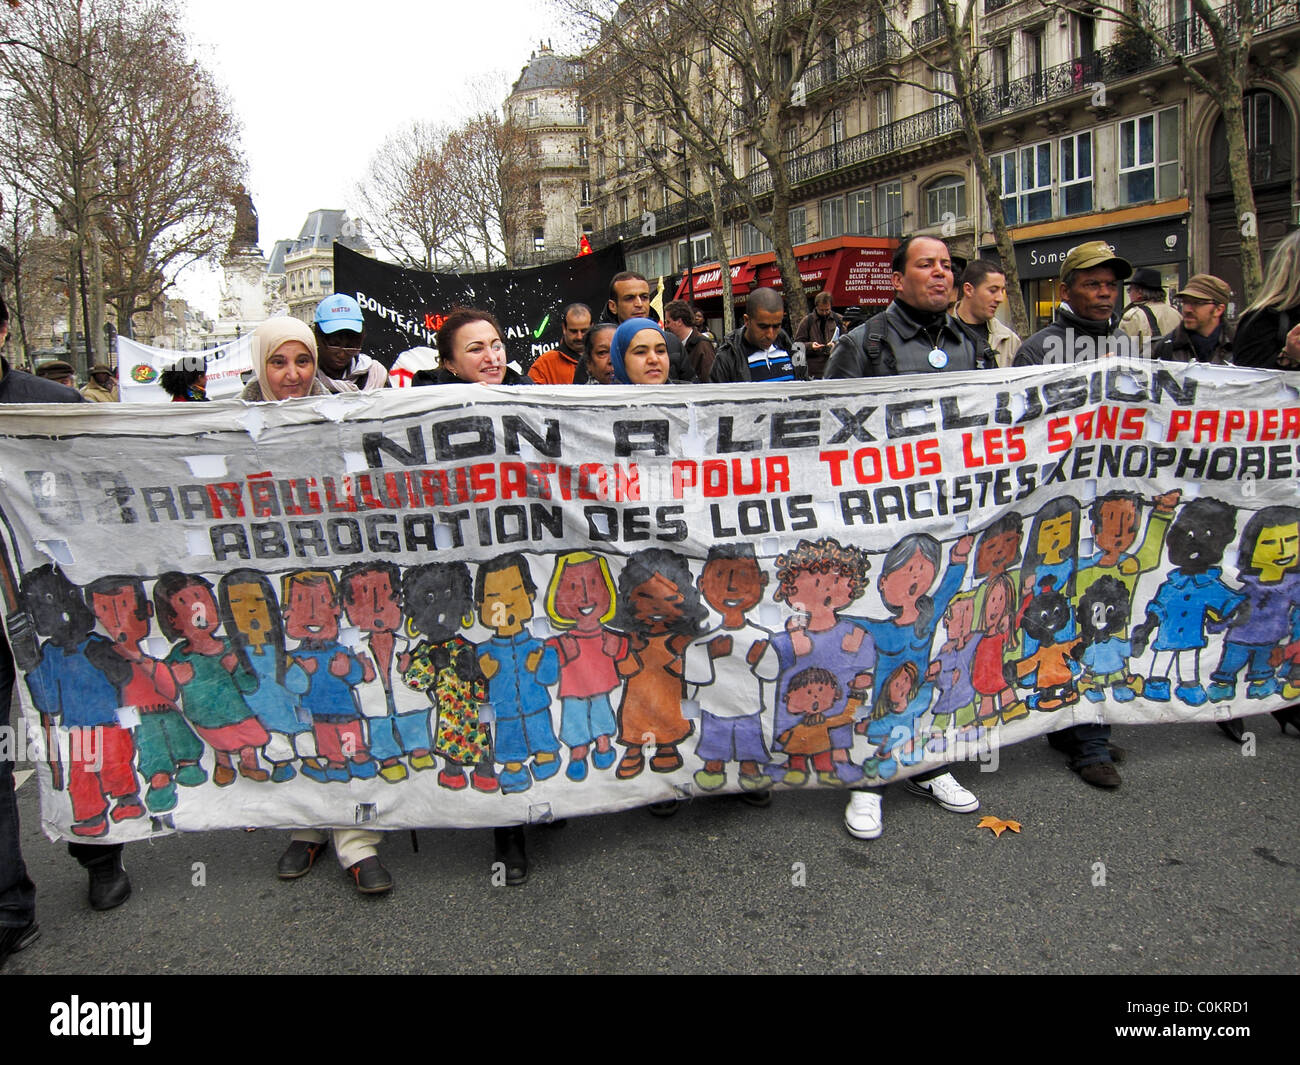 Paris, France, Anti-Racism Demonstration, Migrants Rally, 'Immigrants Without Documents' (Sans papiers) - Stock Image